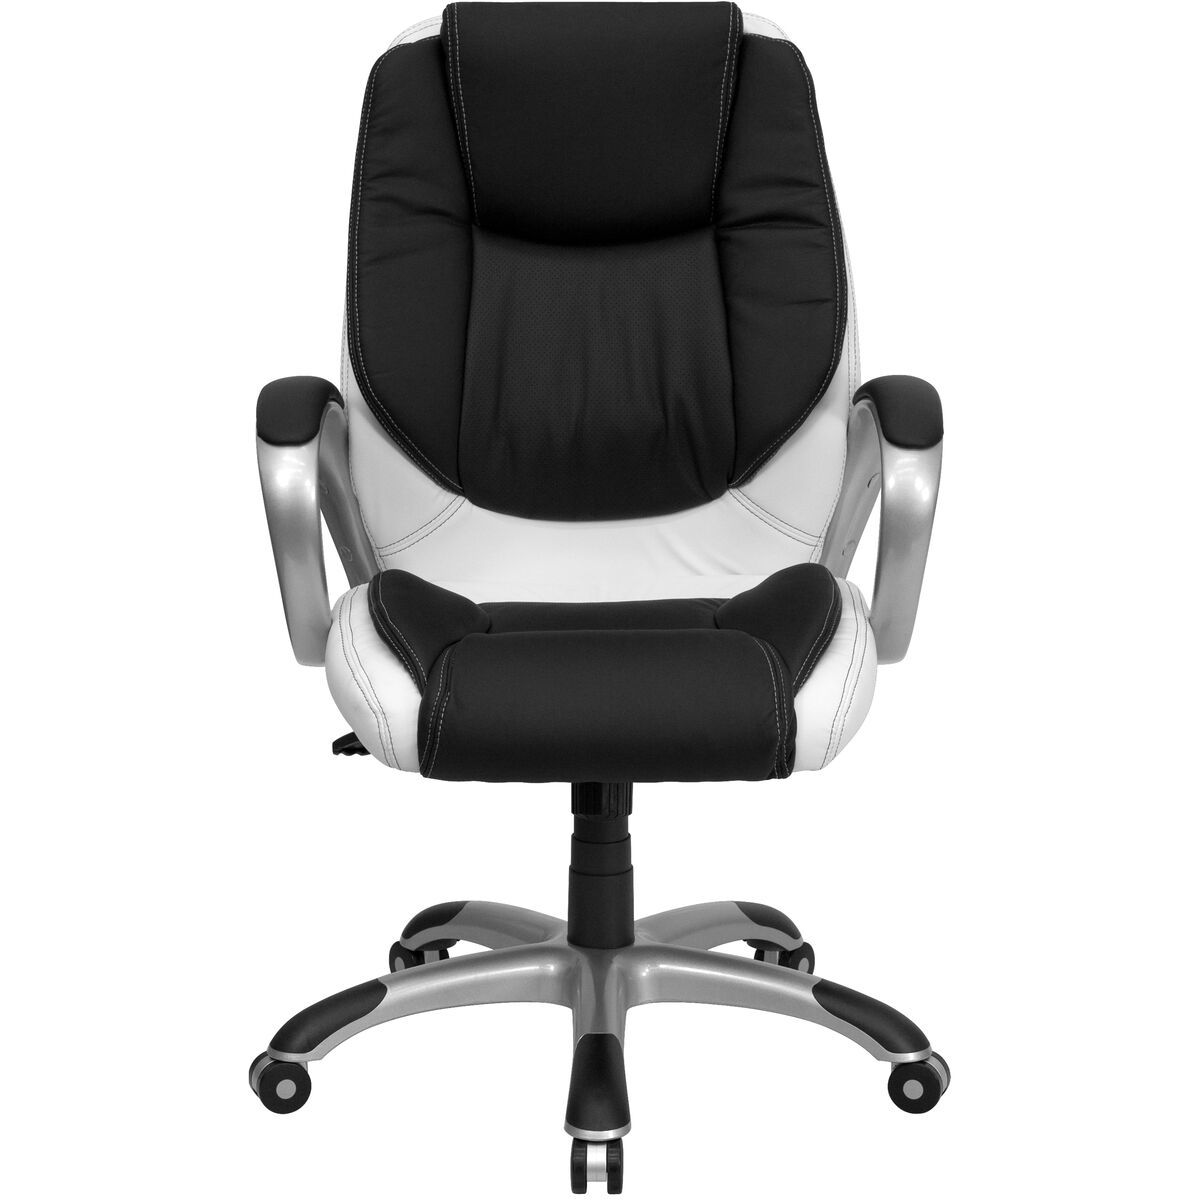 Our Mid Back Black And White Leather Executive Swivel Office Chair With Arms Is On